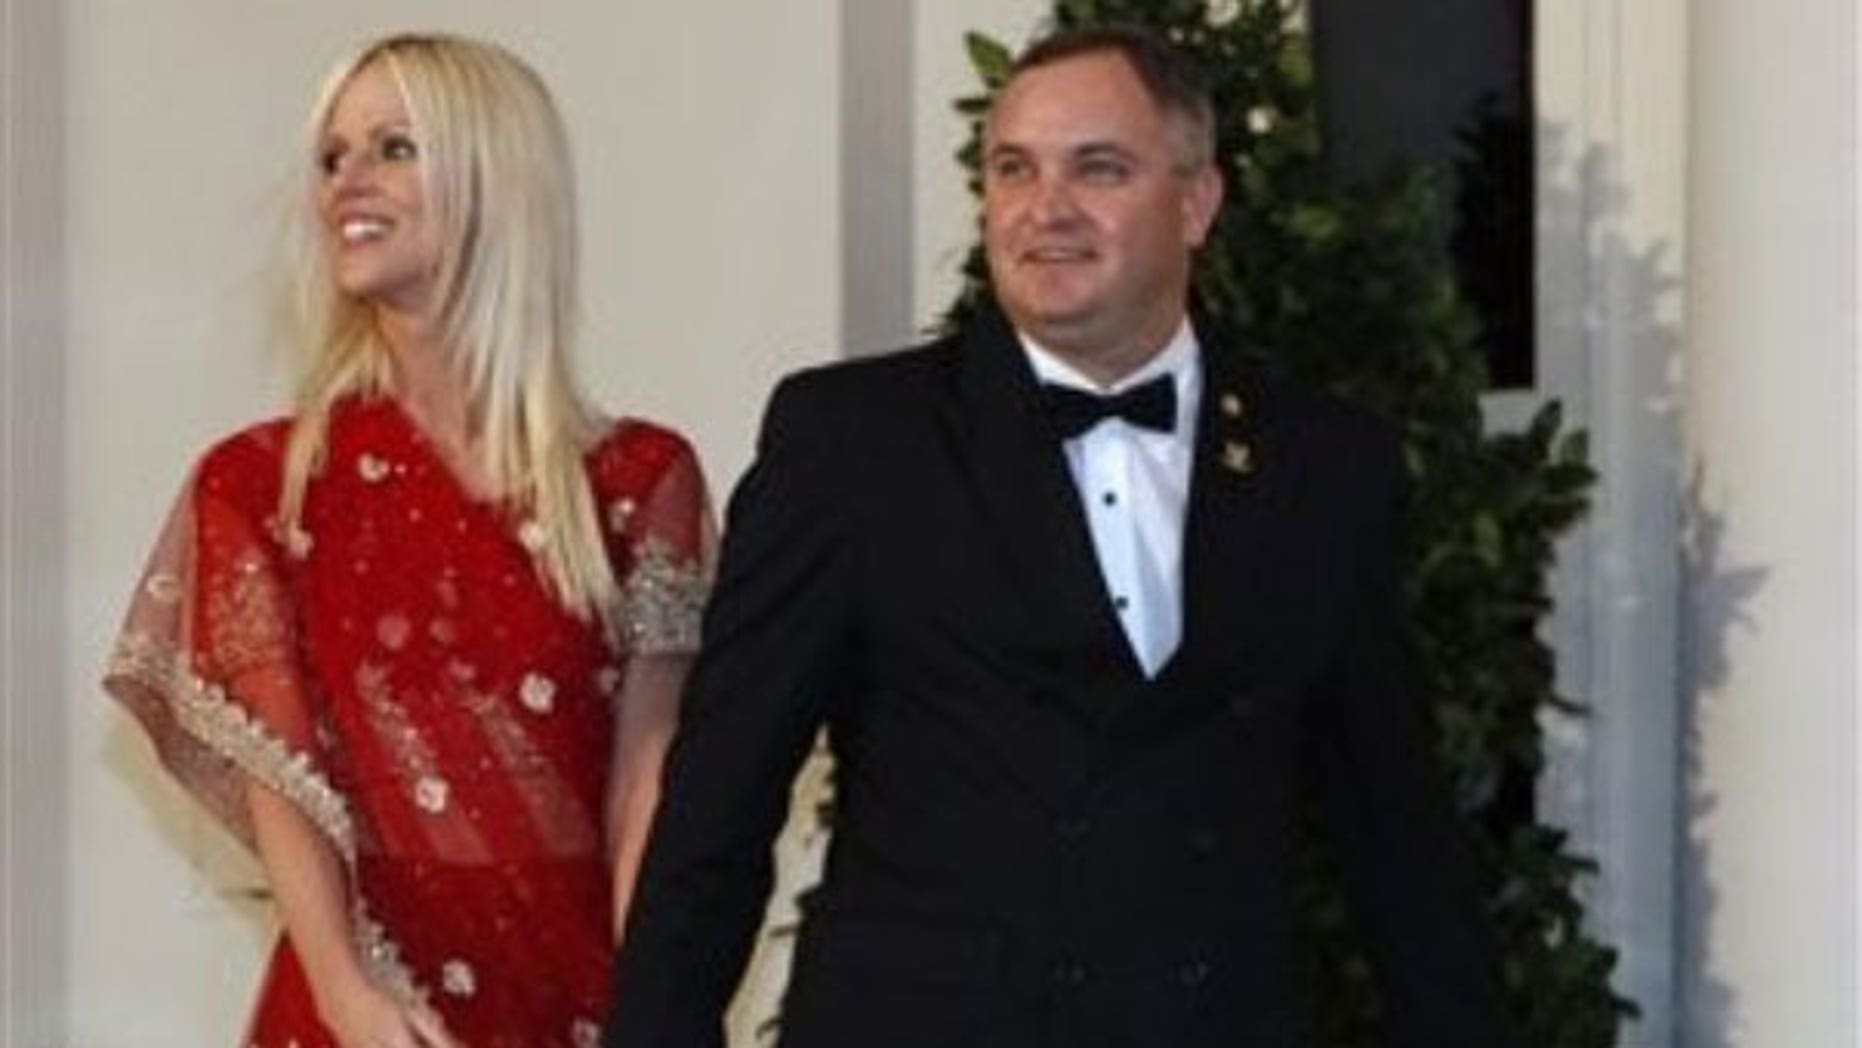 Nov. 24: Michaele and Tareq Salahi arrive at a State Dinner hosted by President Obama for Indian Prime Minister Manmohan Singh at the White House in Washington (AP).